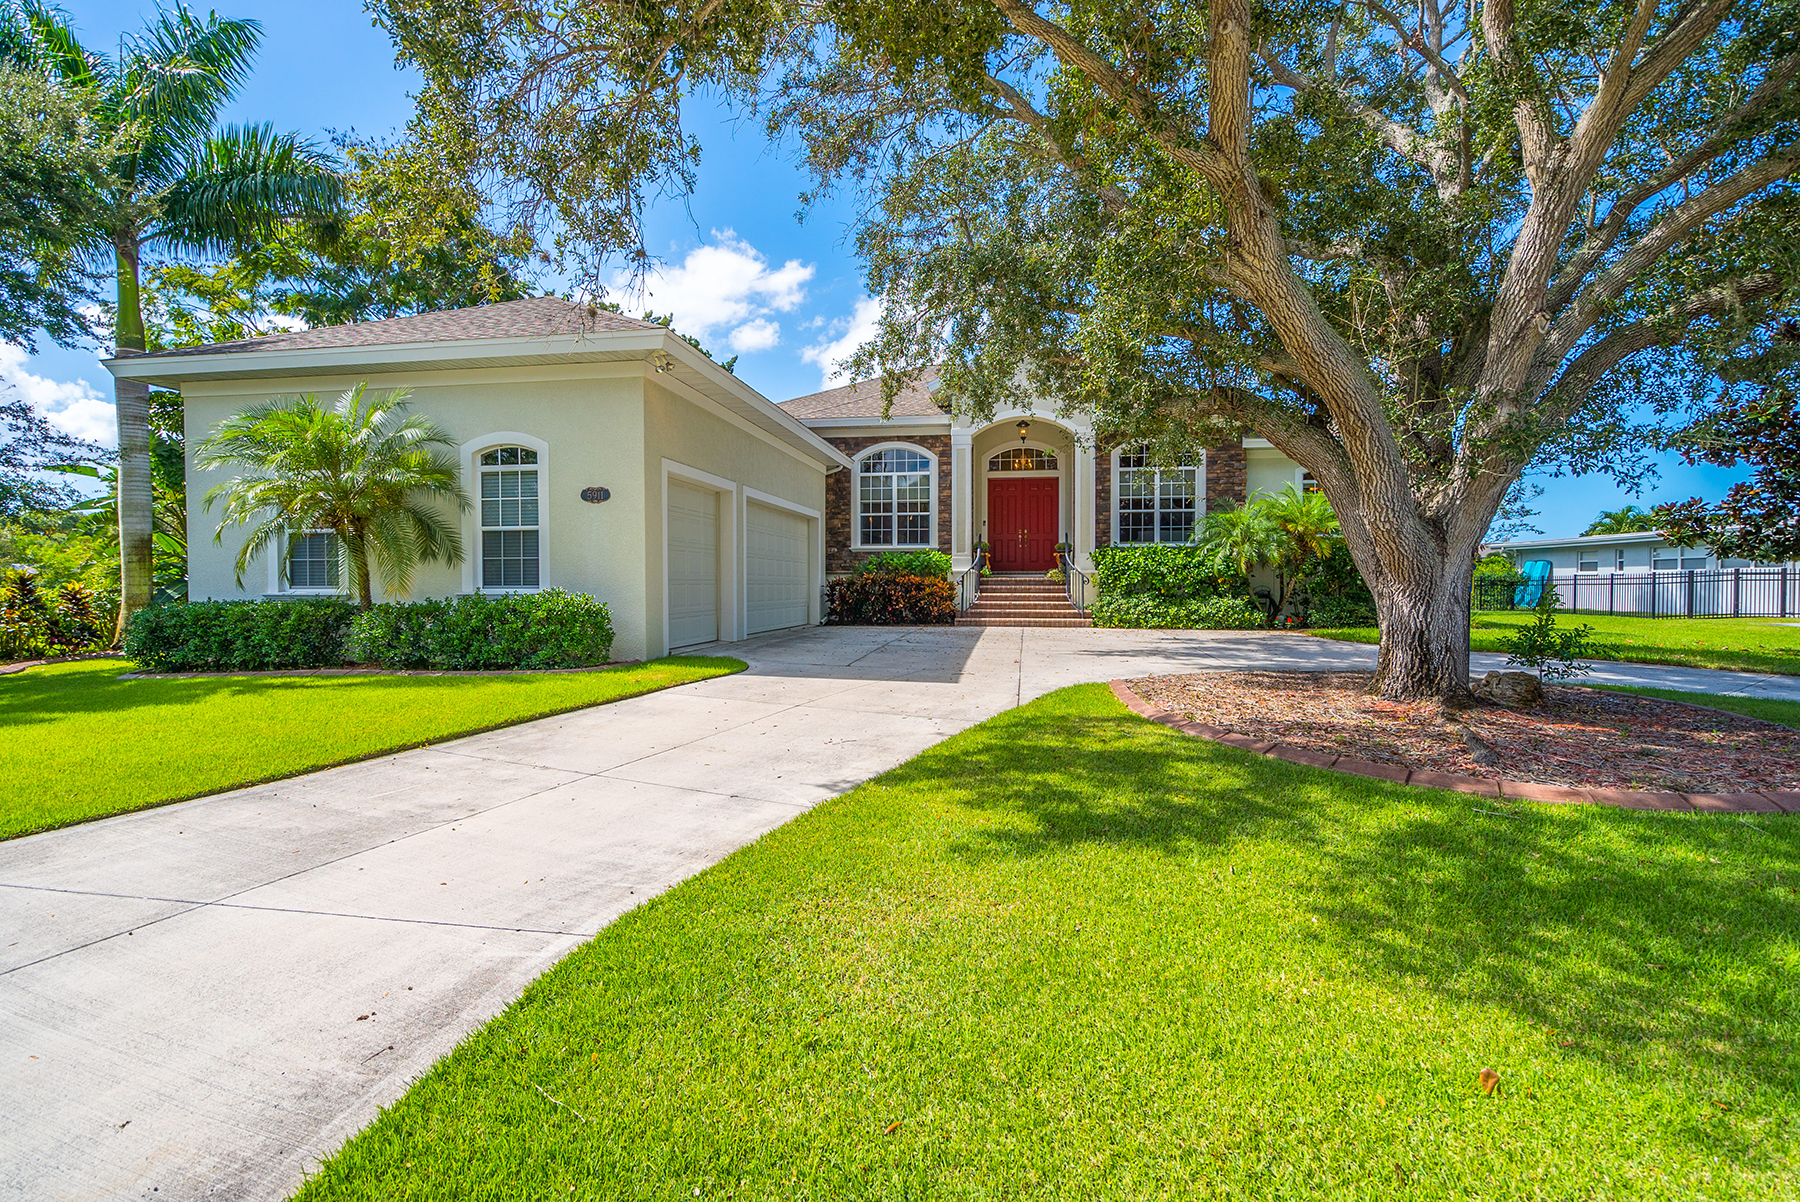 Single Family Home for Sale at LARMARIE SHORES 5911 Riverview Blvd Bradenton, Florida, 34209 United States